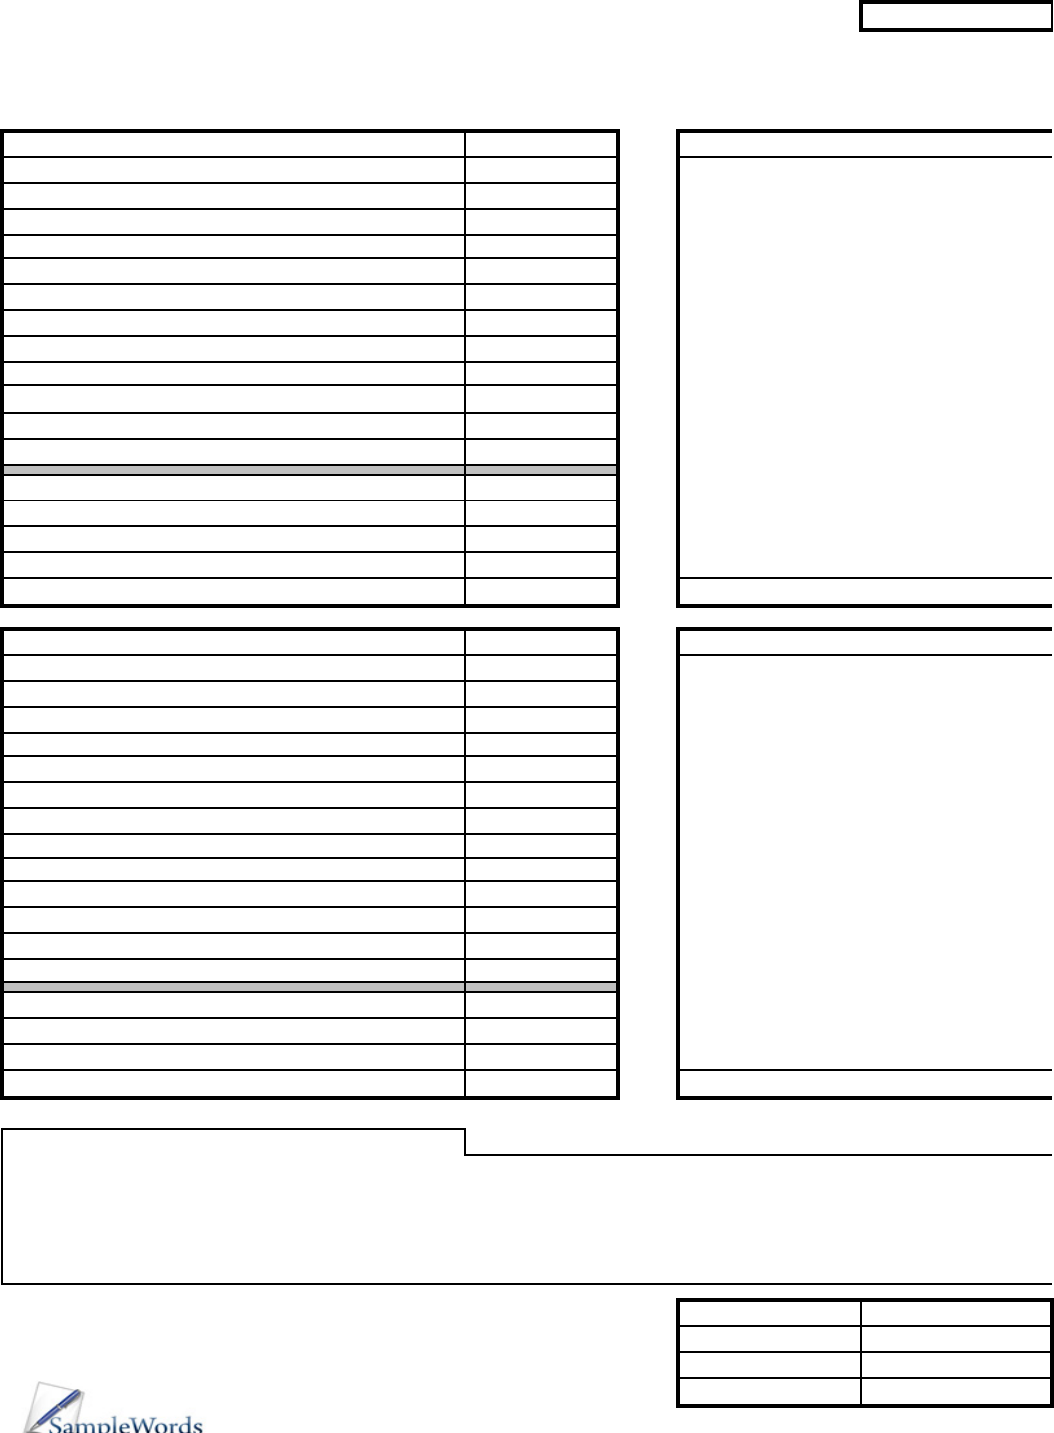 download example electrical contract sheet template download for free tidytemplates. Black Bedroom Furniture Sets. Home Design Ideas